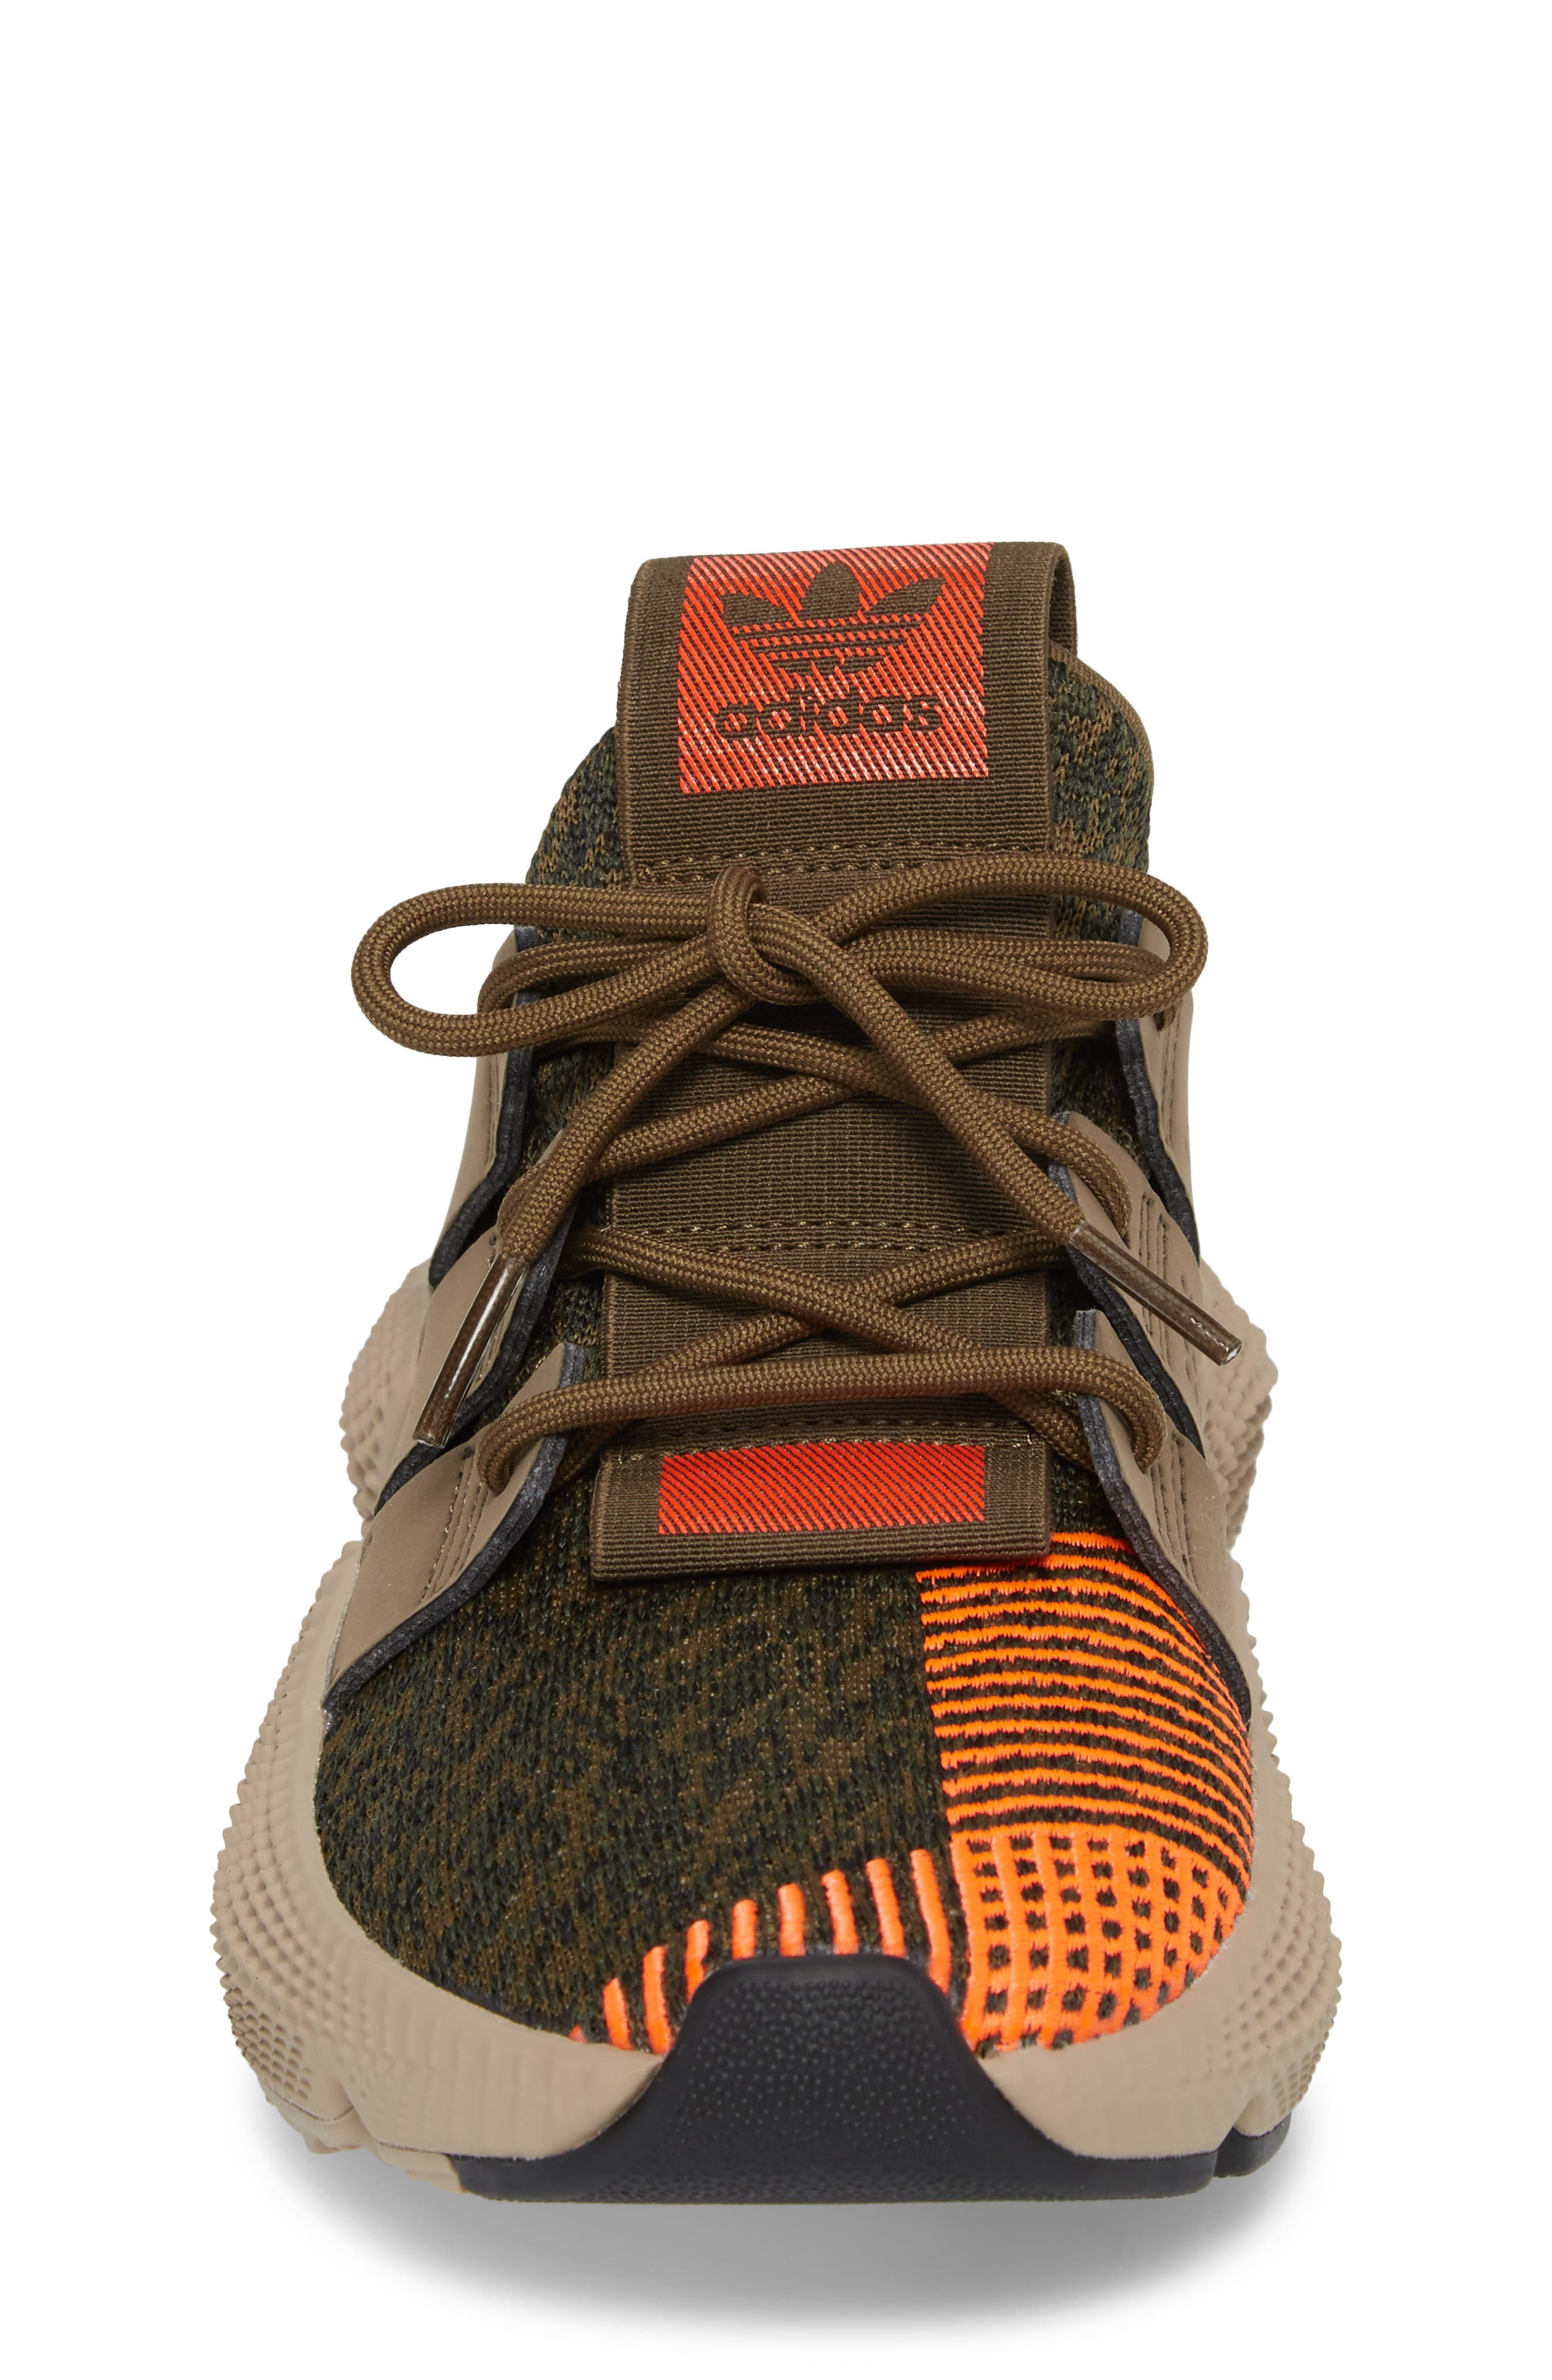 Prophere Sneaker,                             Alternate thumbnail 4, color,                             Trace Olive / Trace Khaki